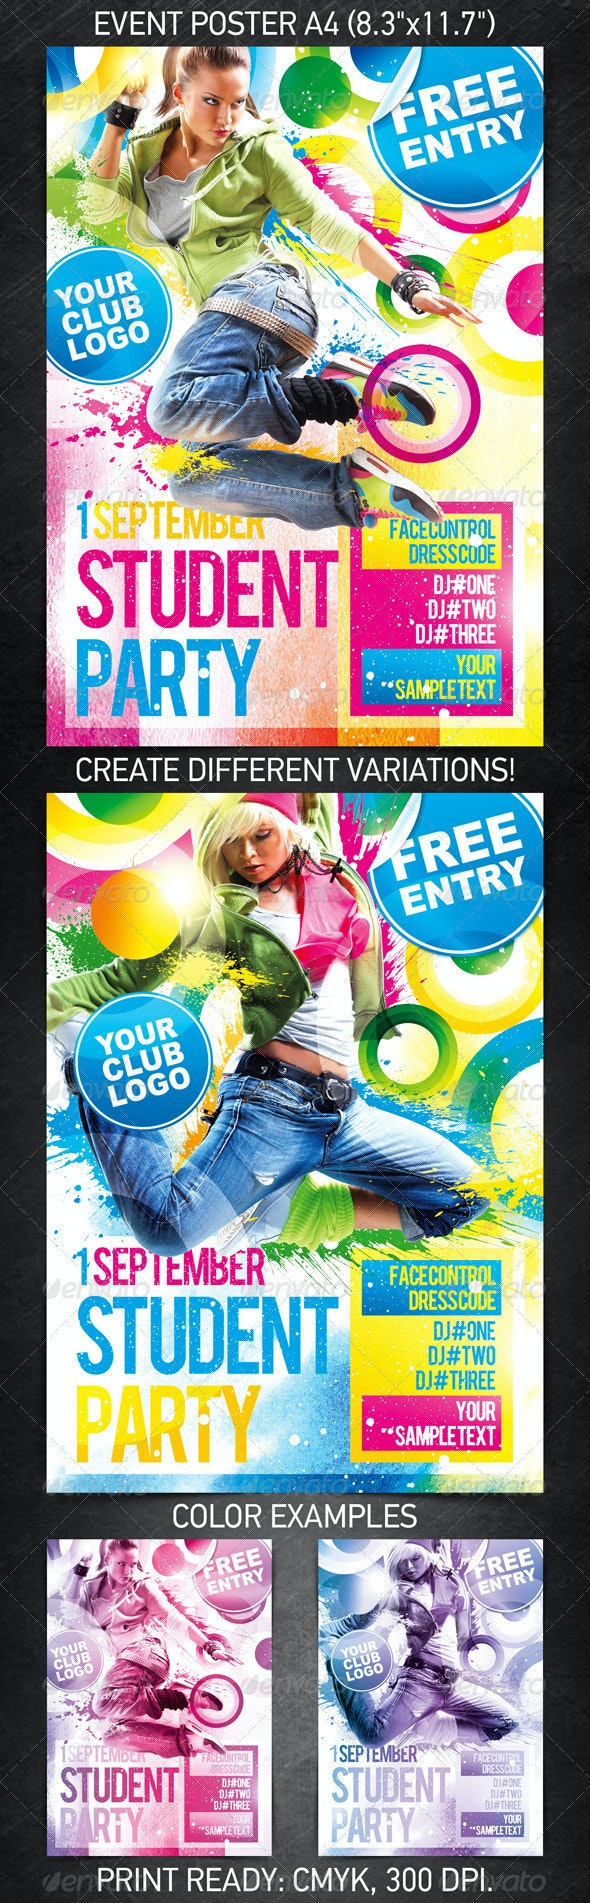 Student Party Poster - Clubs & Parties Events